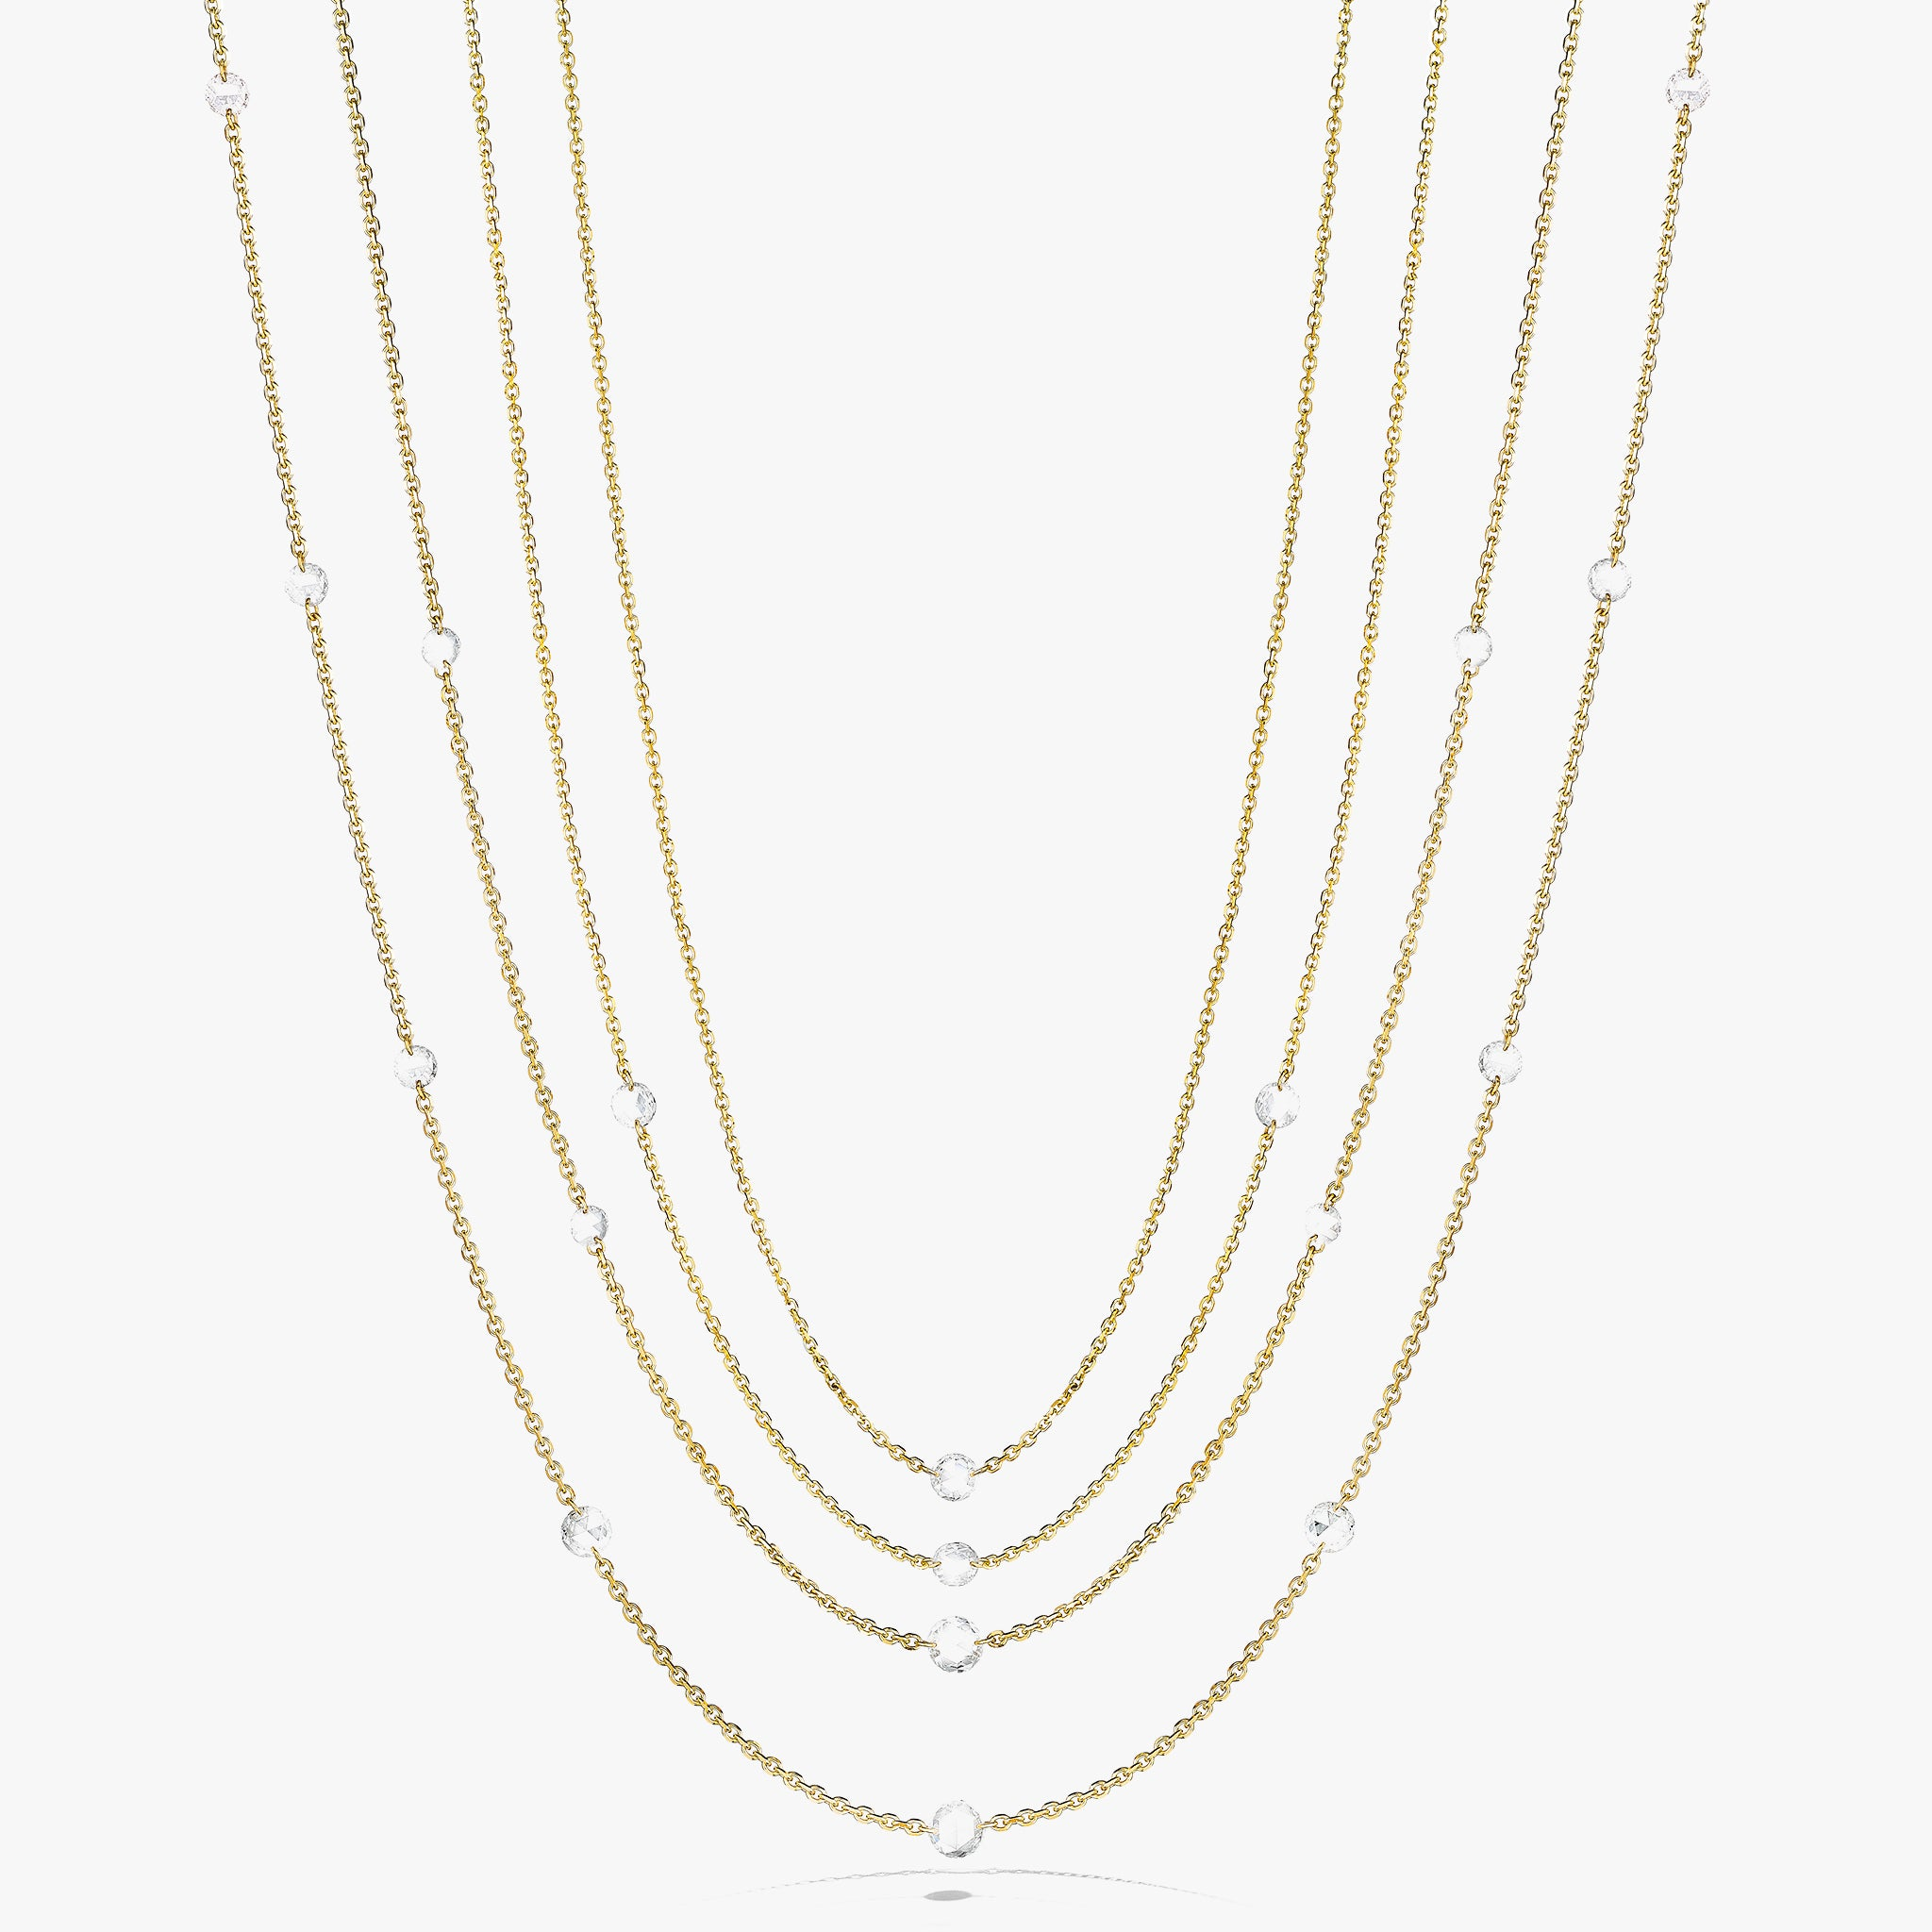 Group-Shot-Rosette-Necklaces_18k Yellow Gold